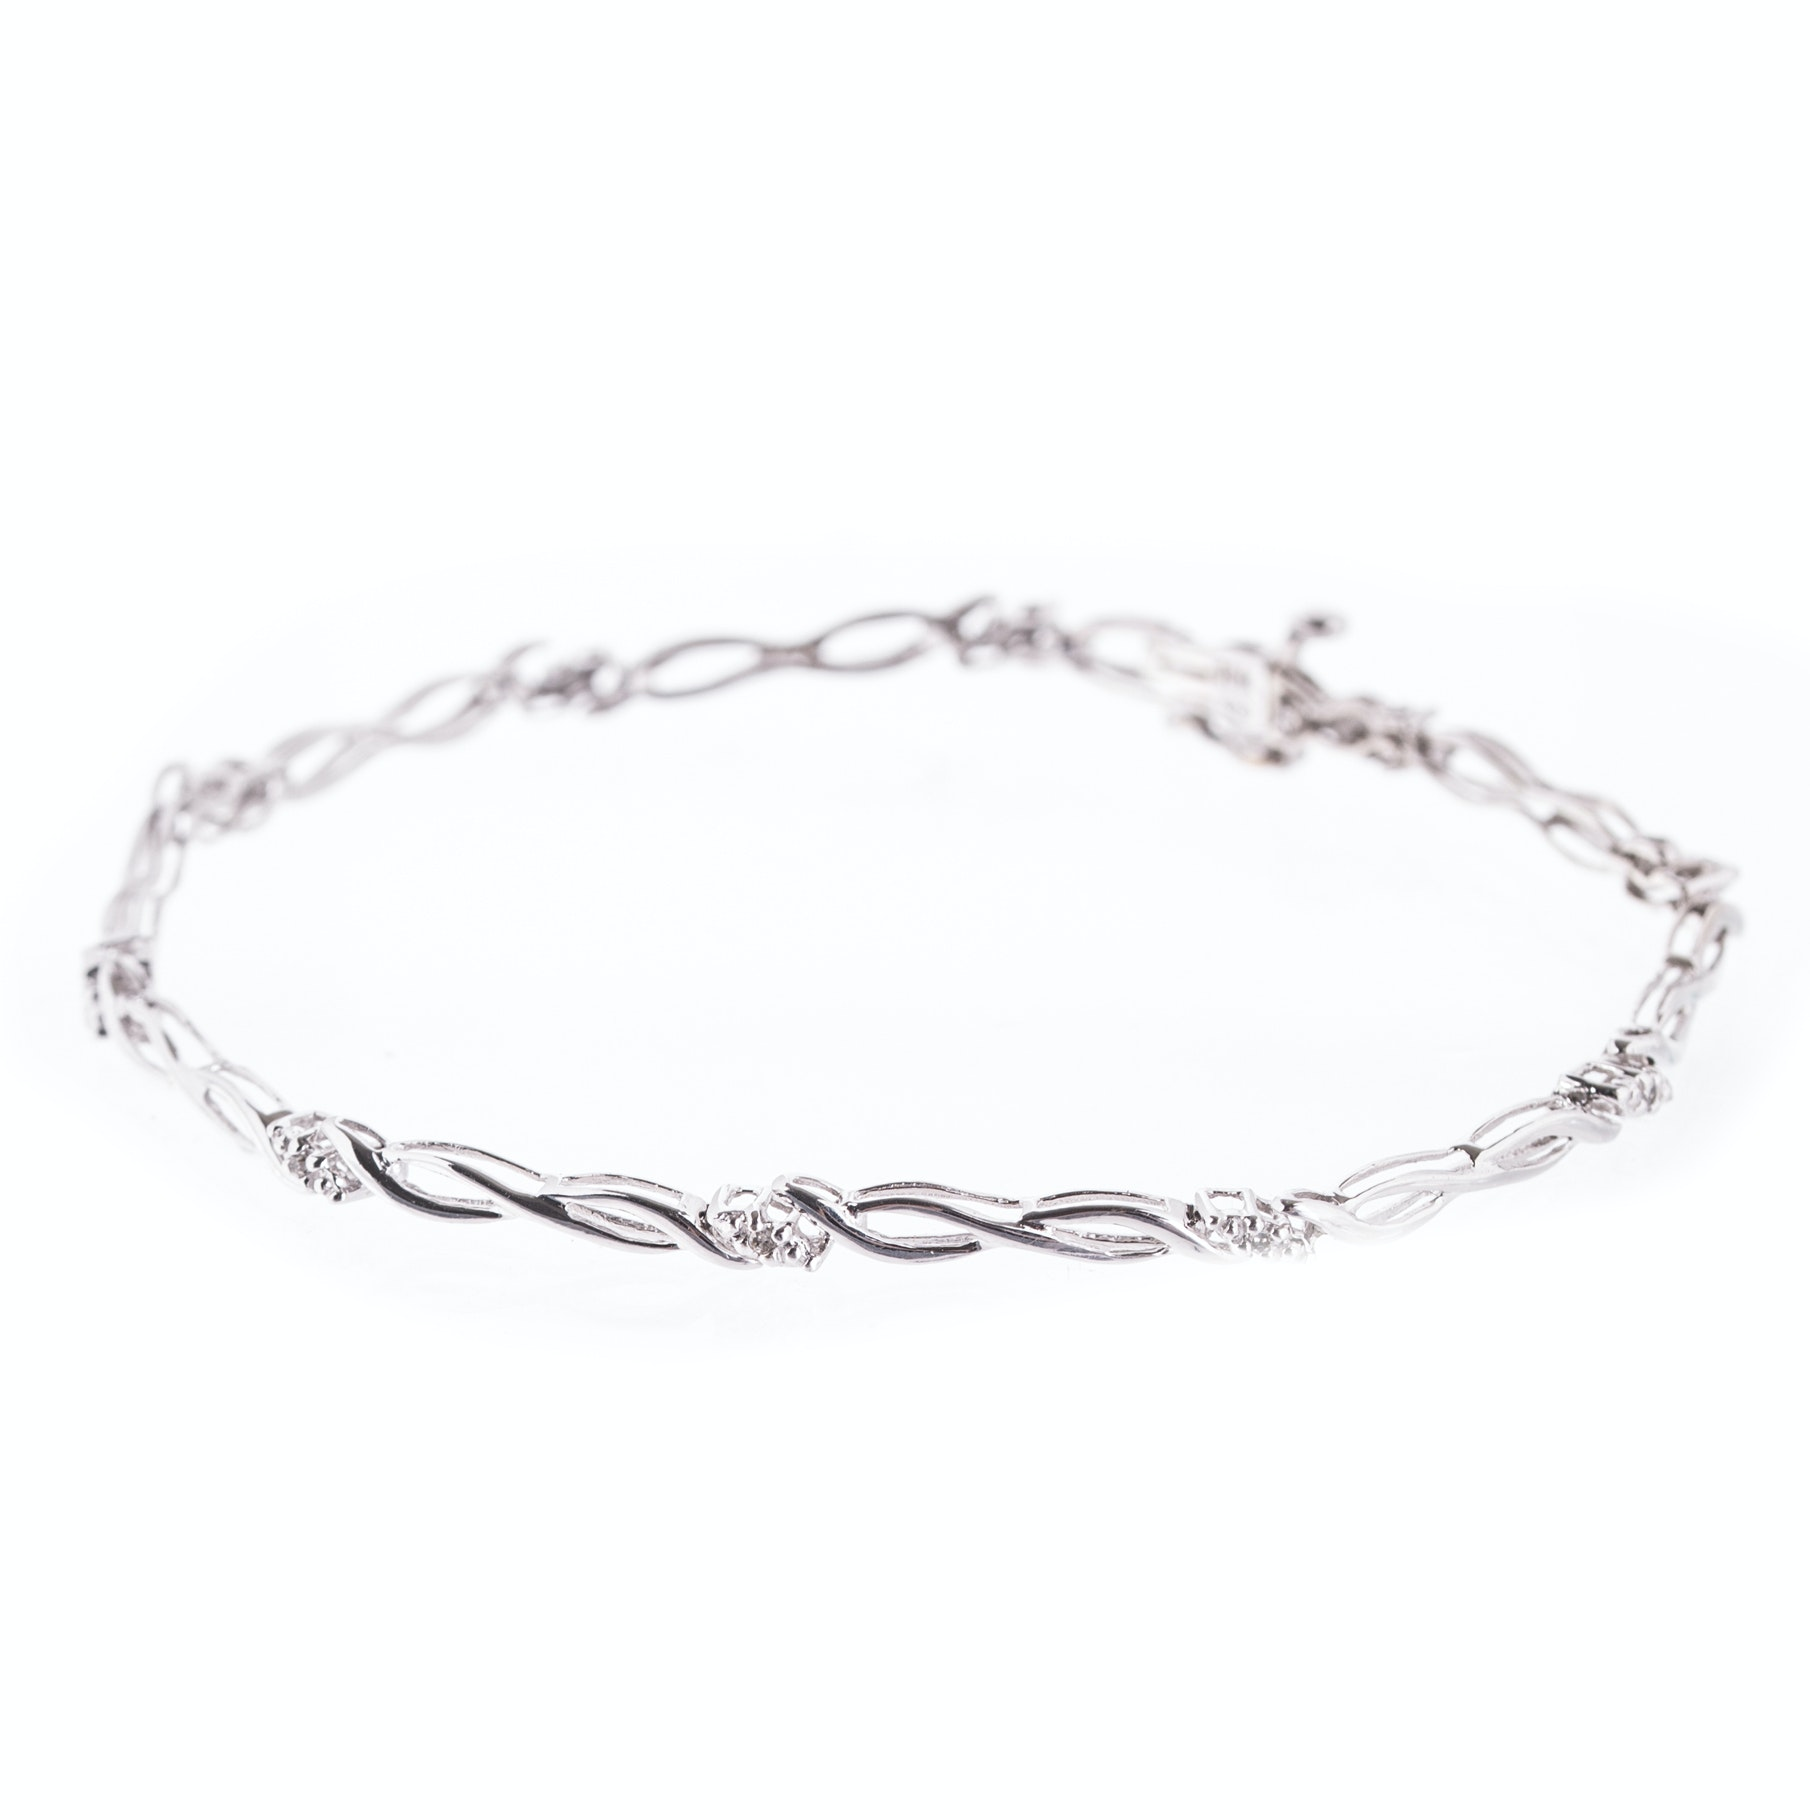 10K White Gold and Diamond Fancy Link Tennis Bracelet